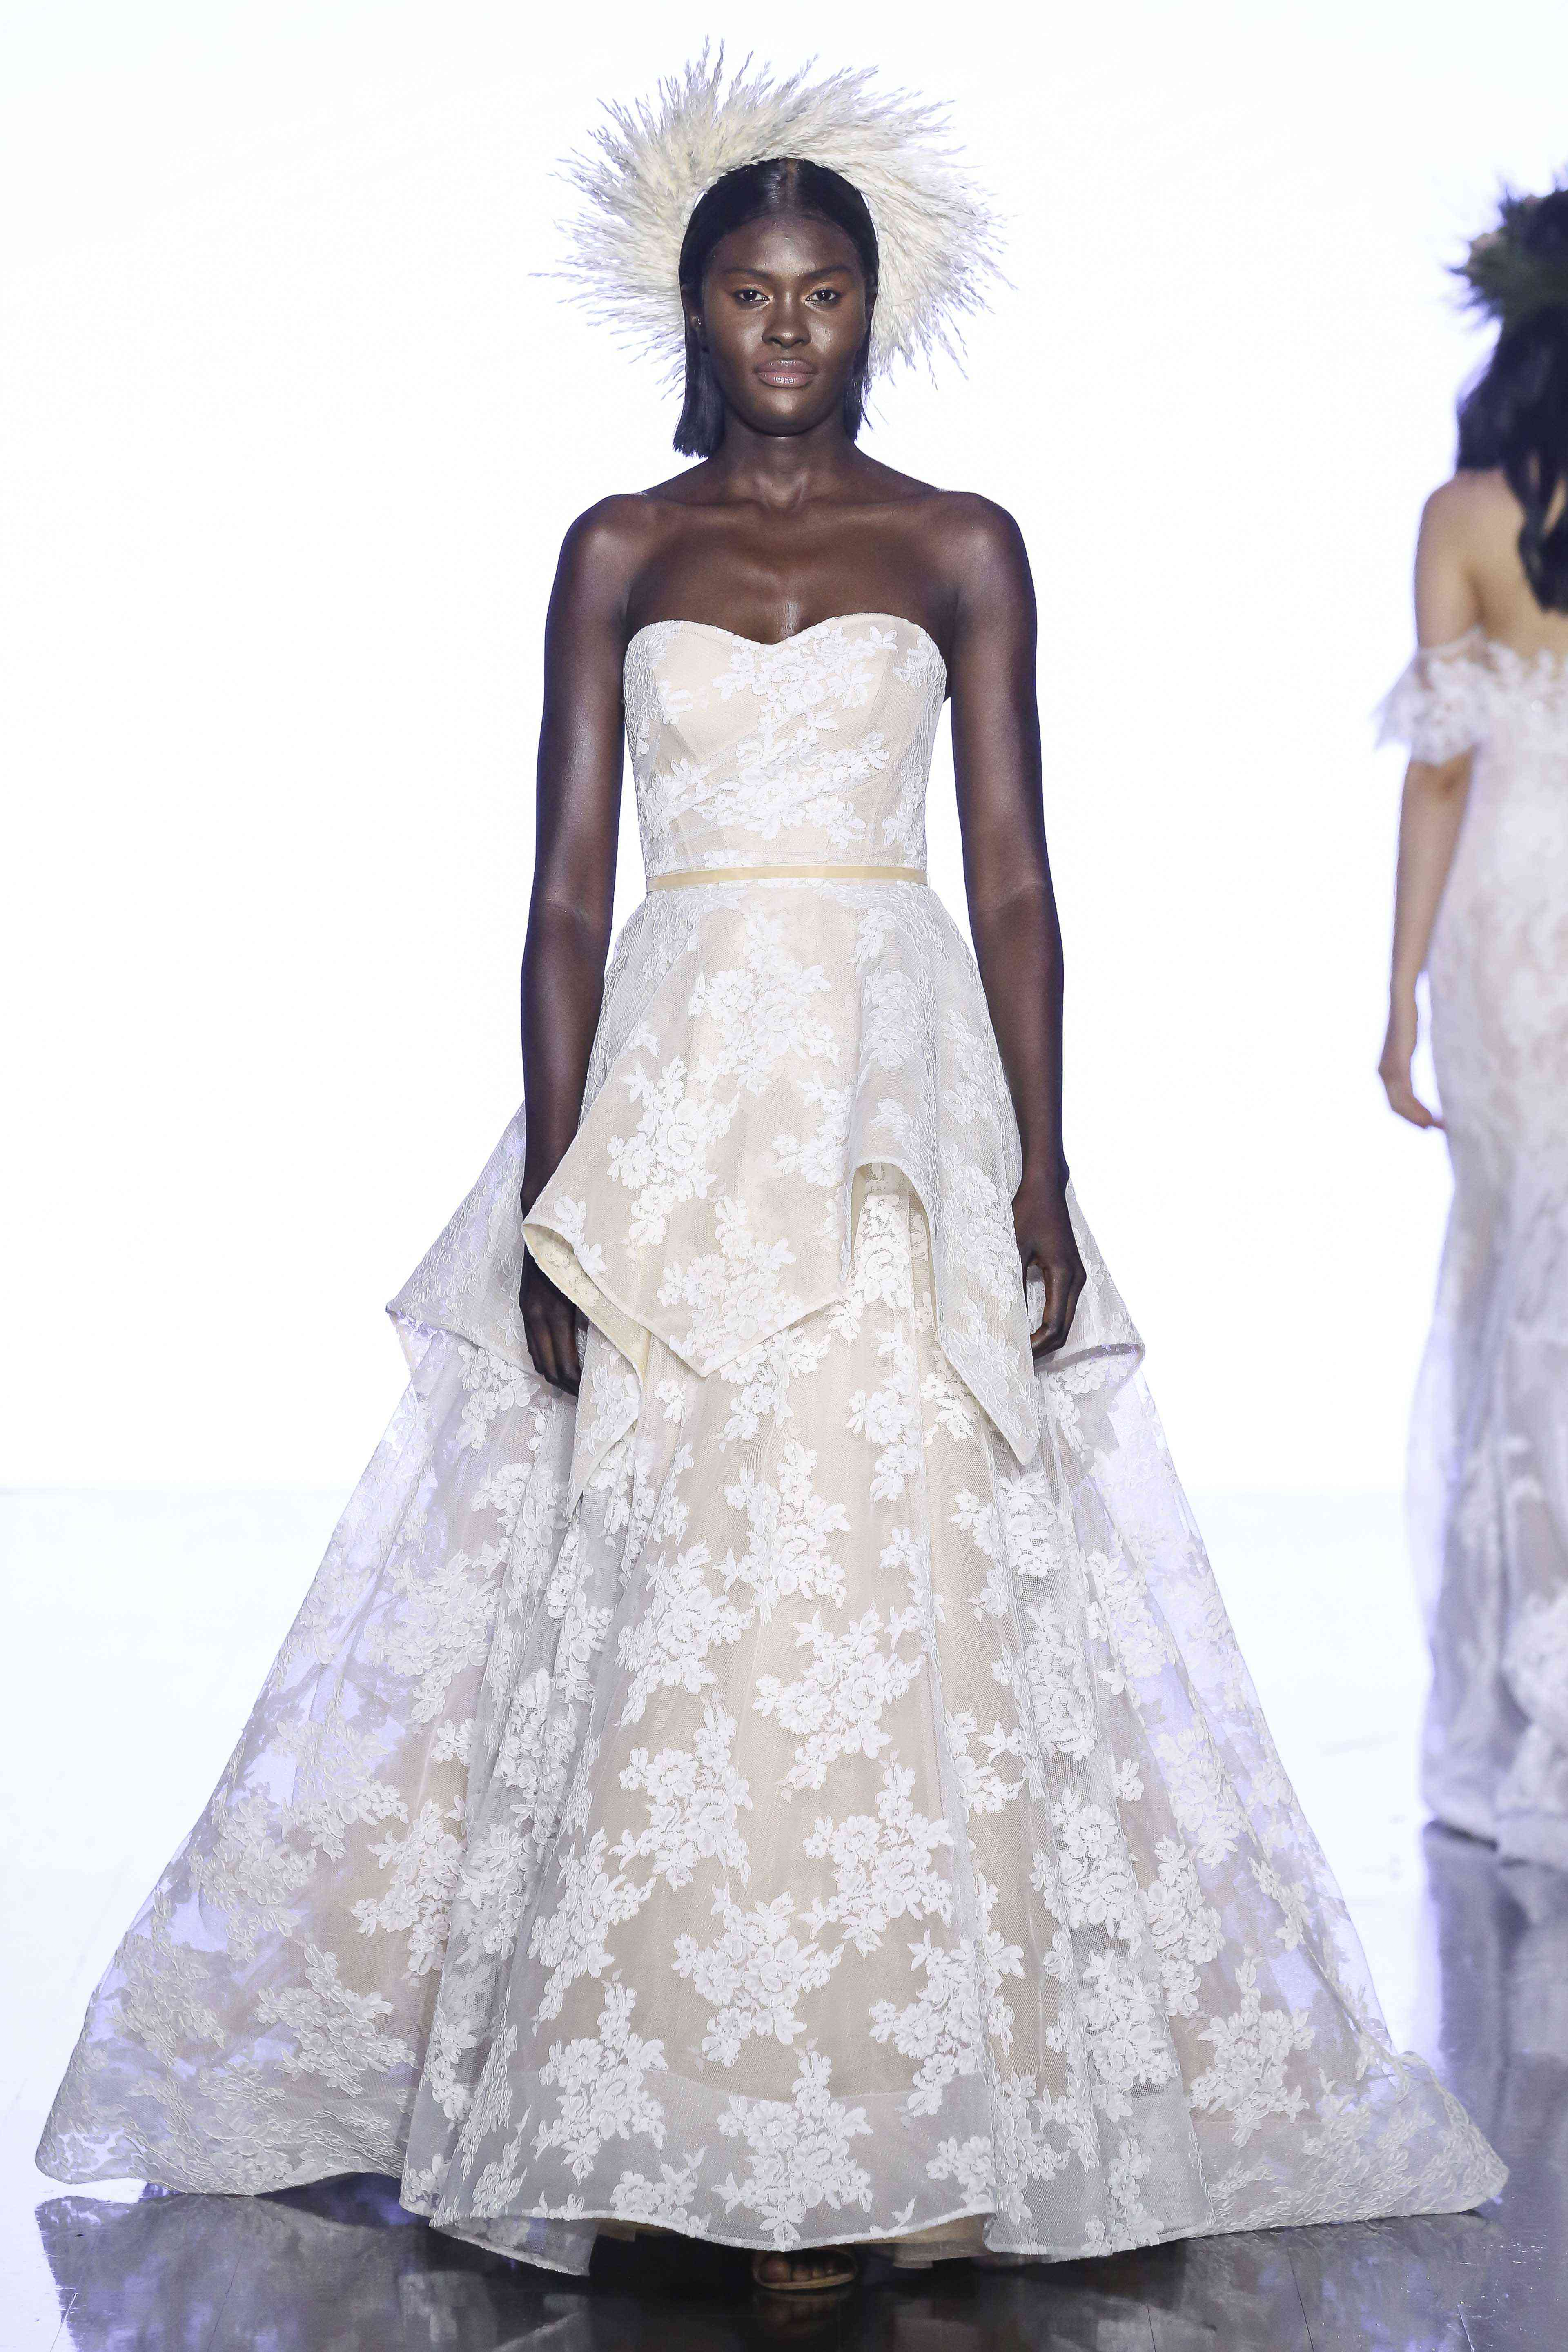 Model in strapless lace and organza ballgown with a tiered skirt